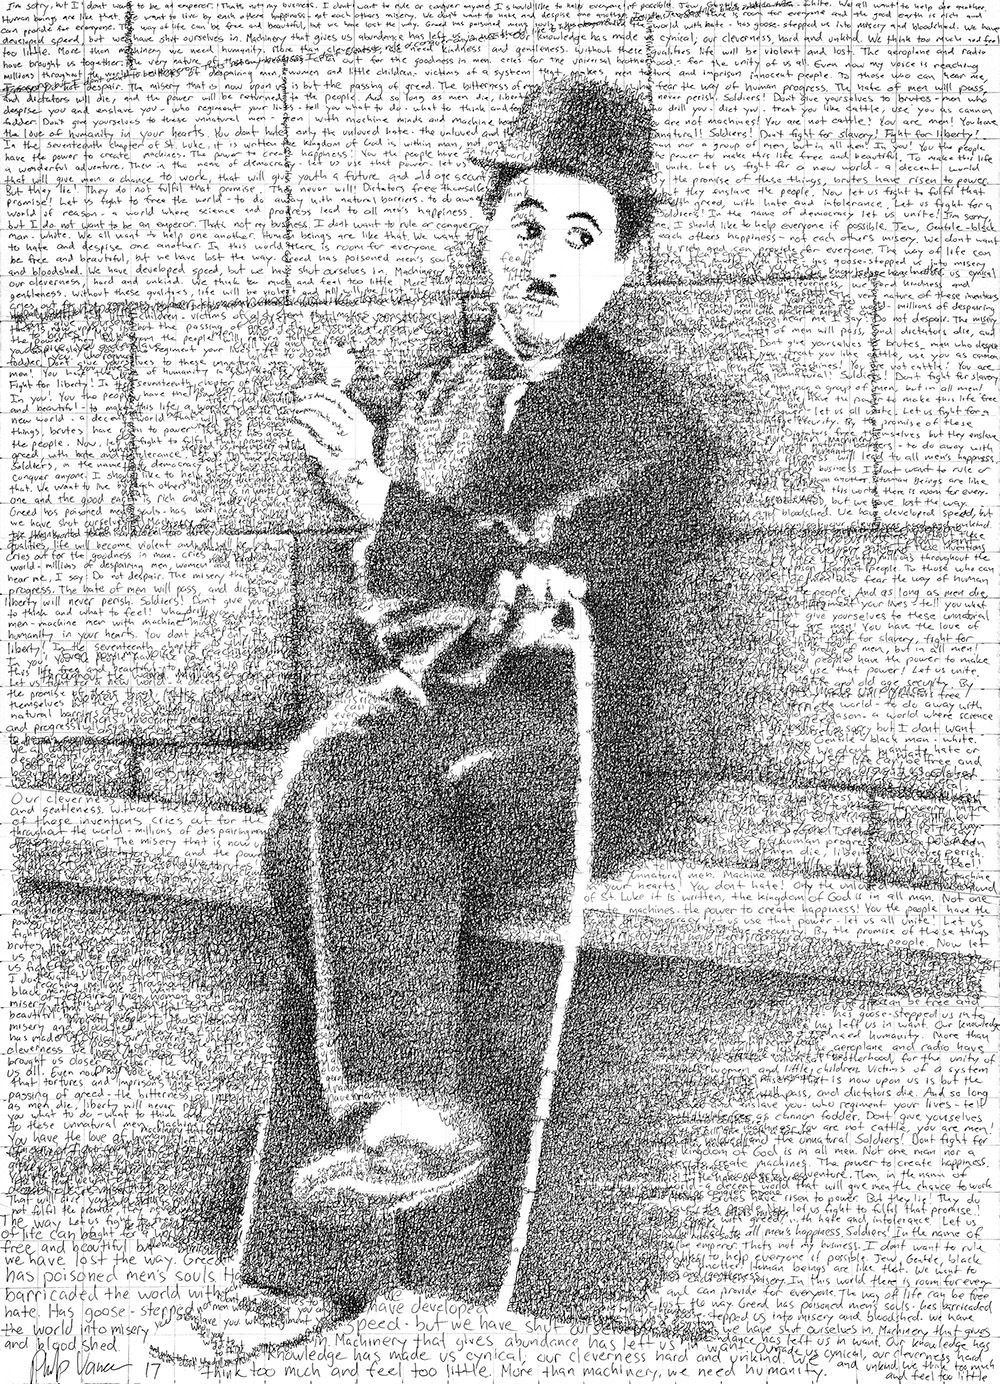 """The way of life can be free and beautiful, but we have lost the way."" - Charlie Chaplin in His Own Words (2017)Ink on Watercolor Paper, 22x30in"